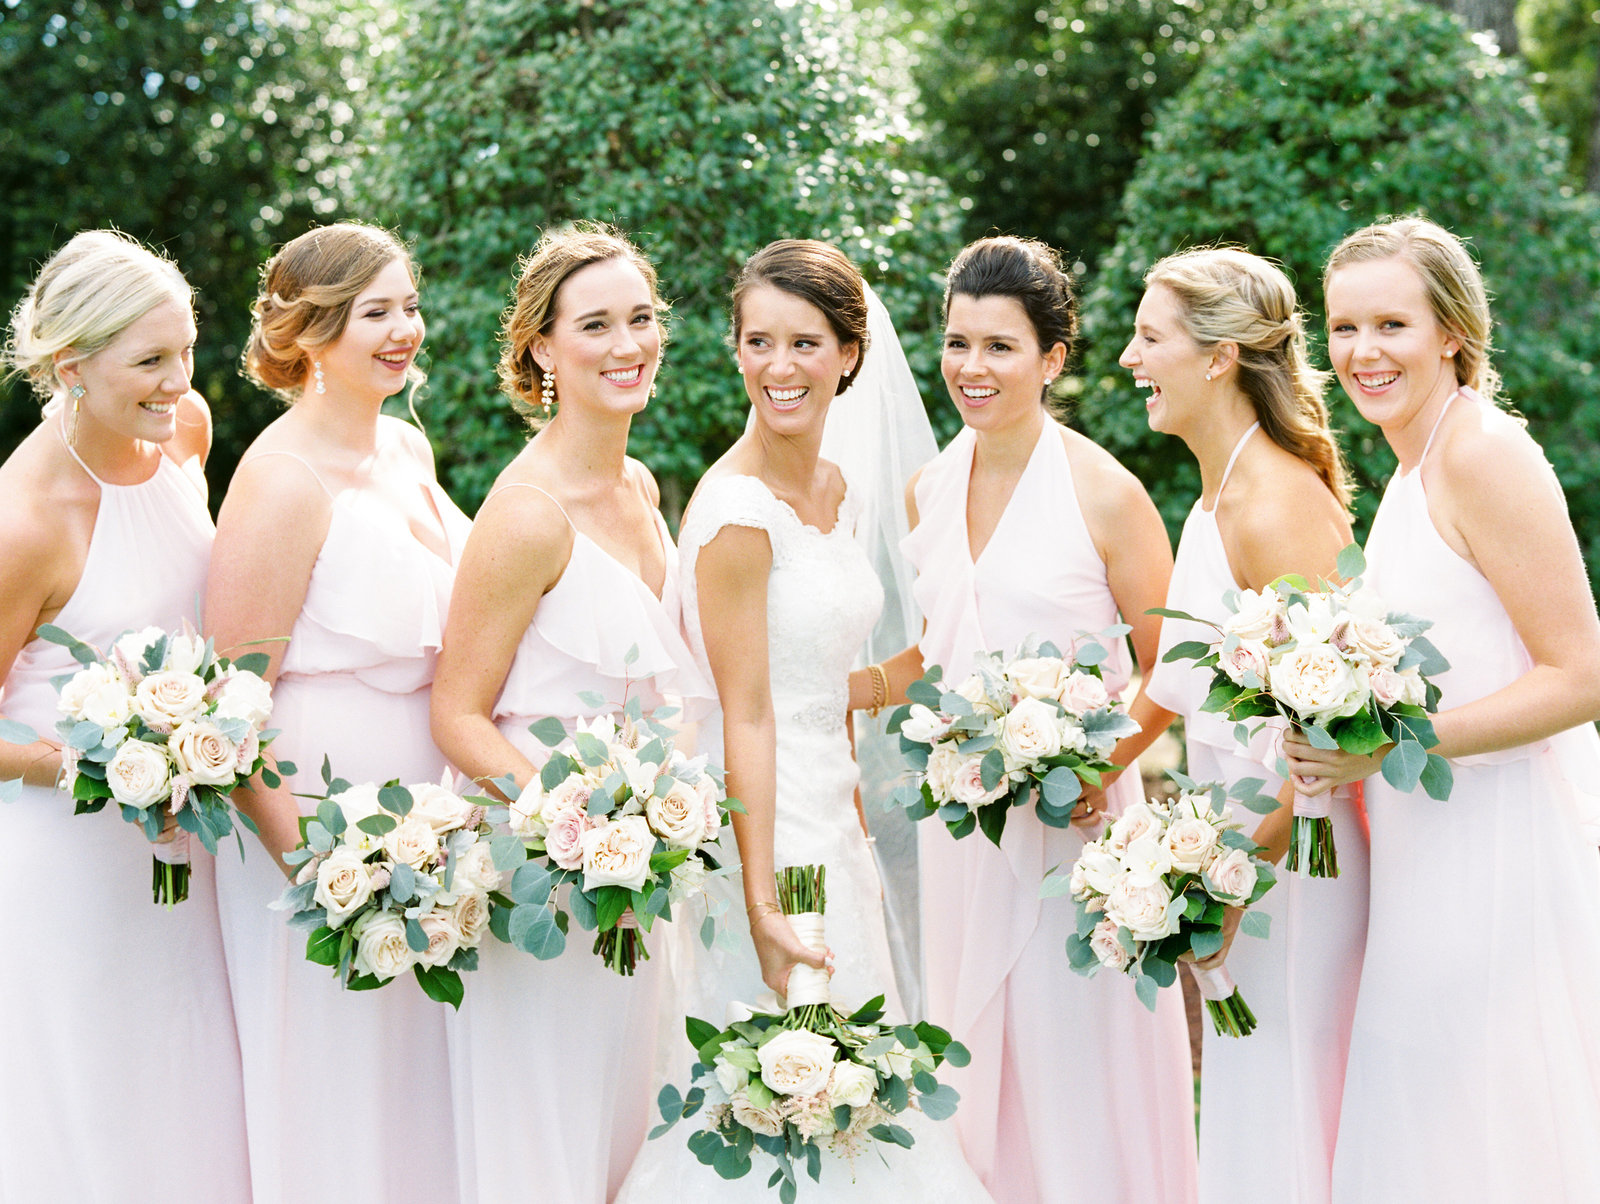 raleigh_wedding_photographer_caseyrosephotography_jessicacharlie_140